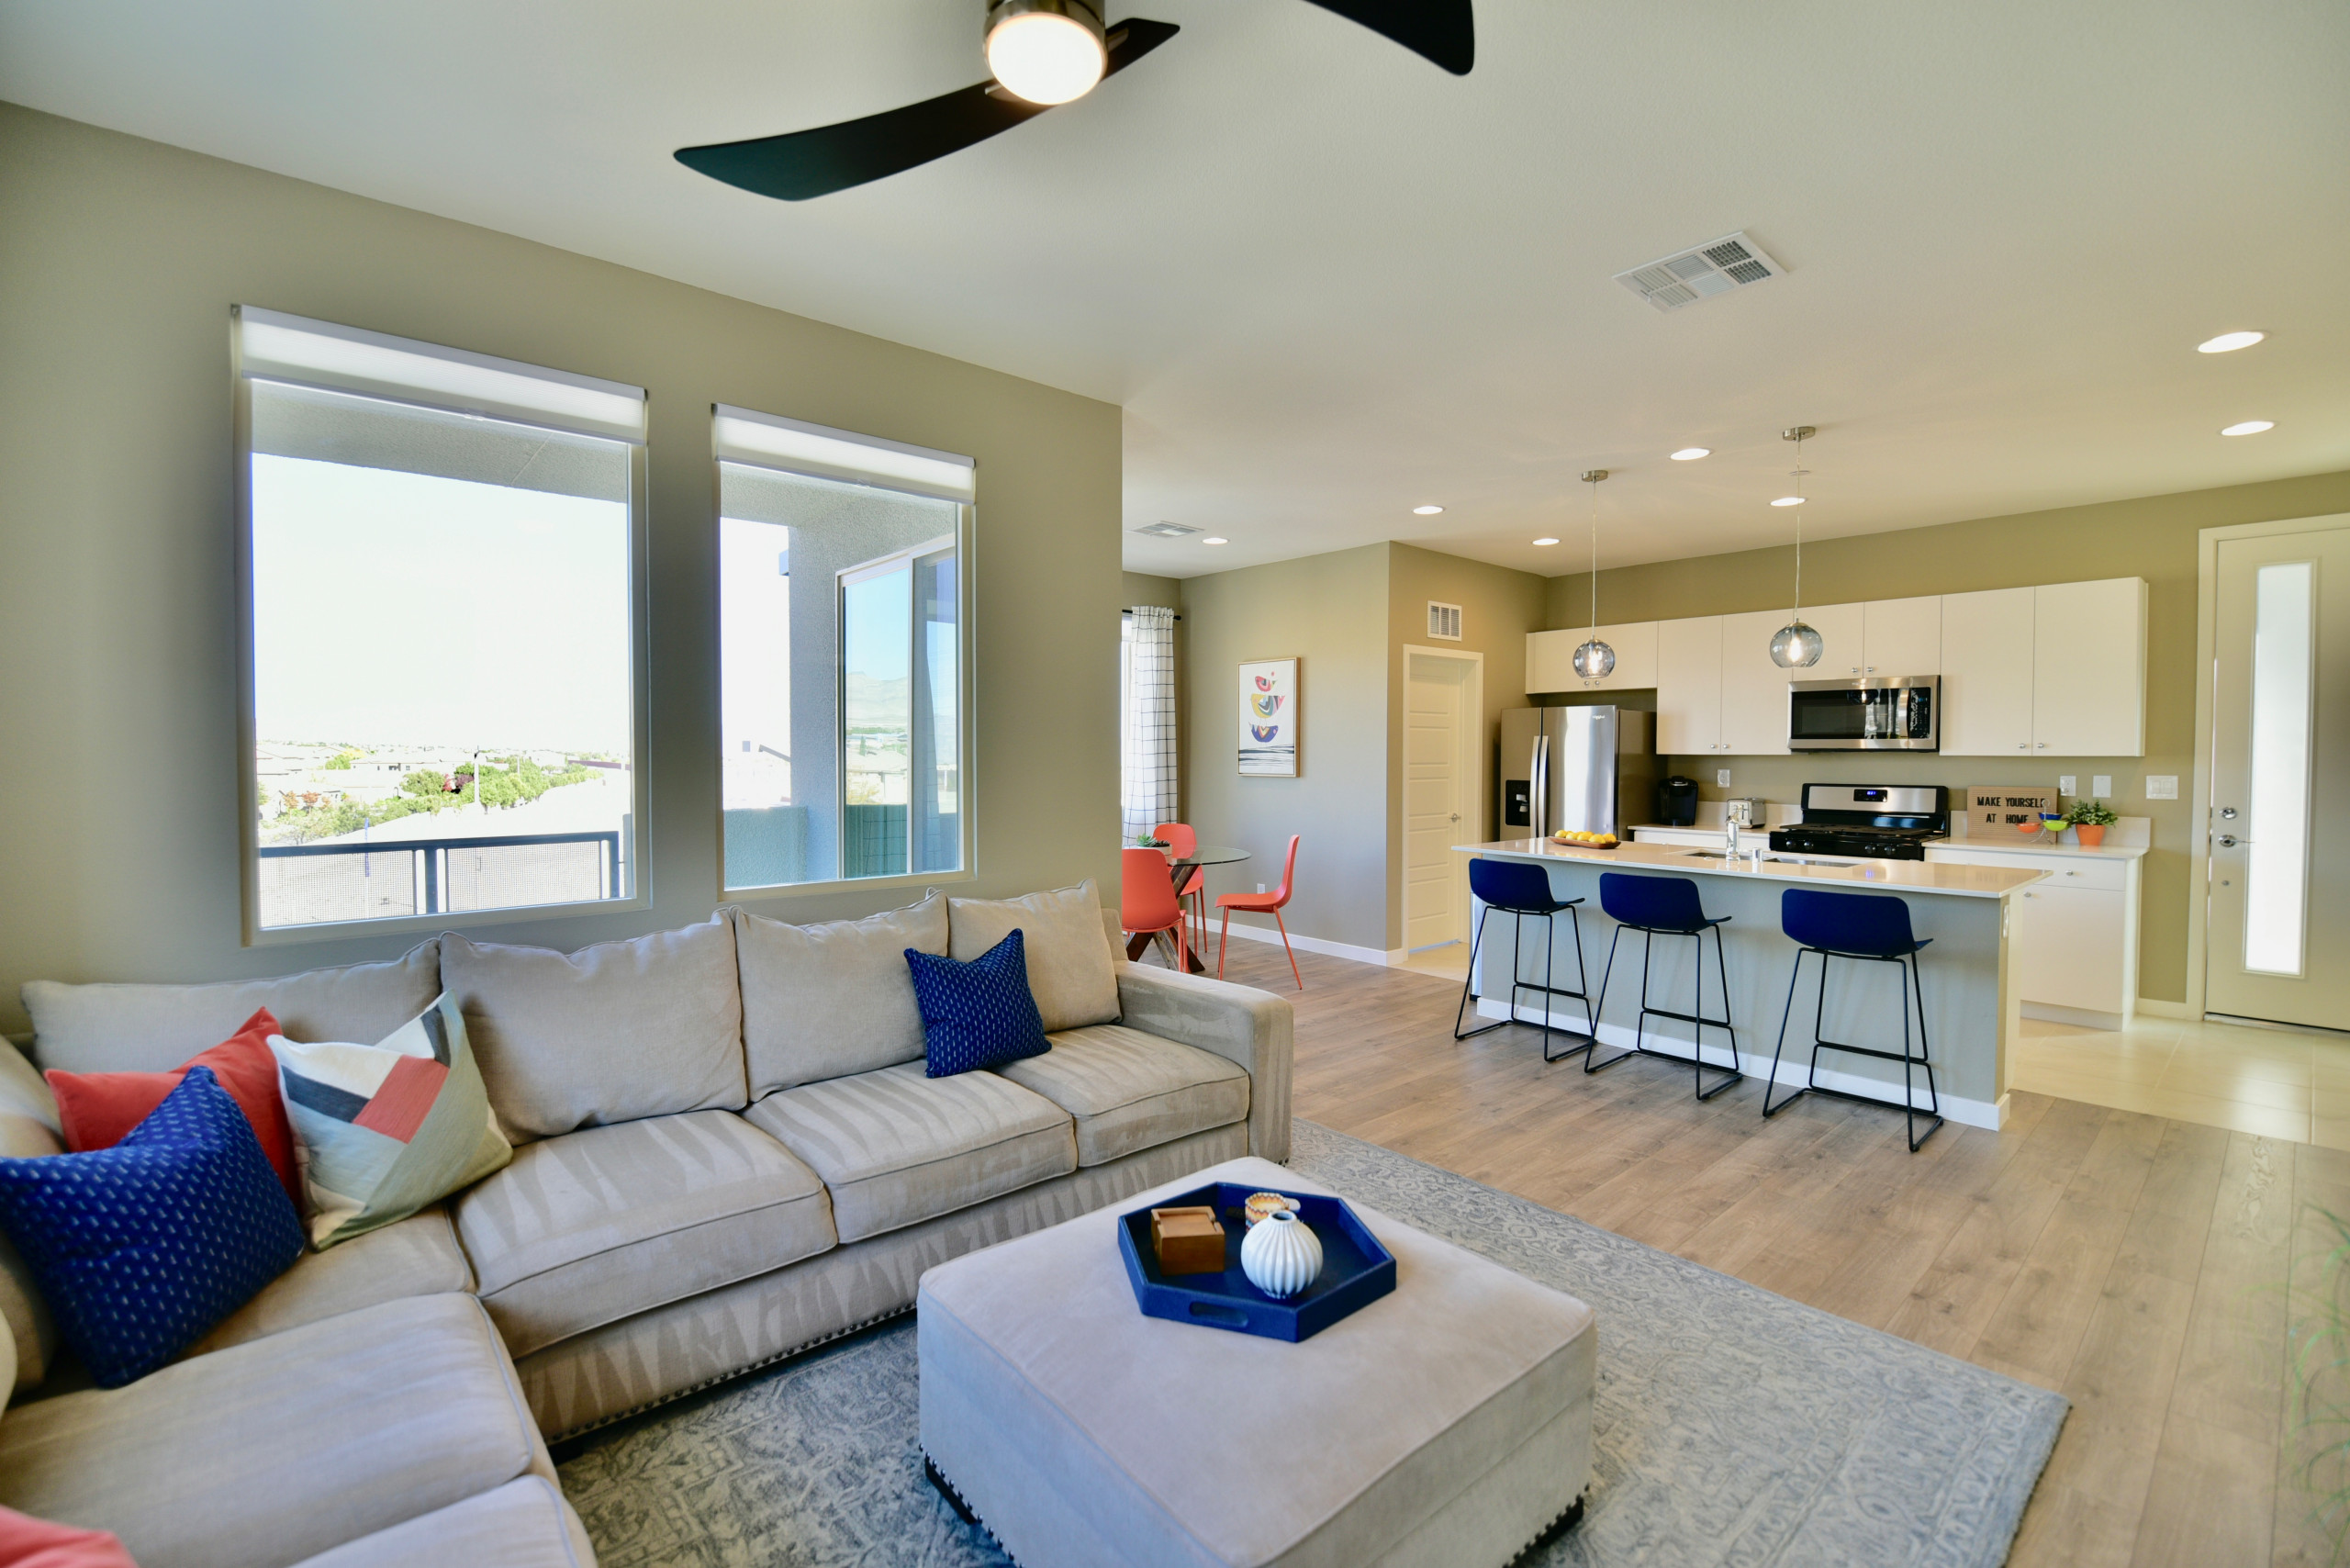 Summerlin-Affinity Corporate Rental Styling